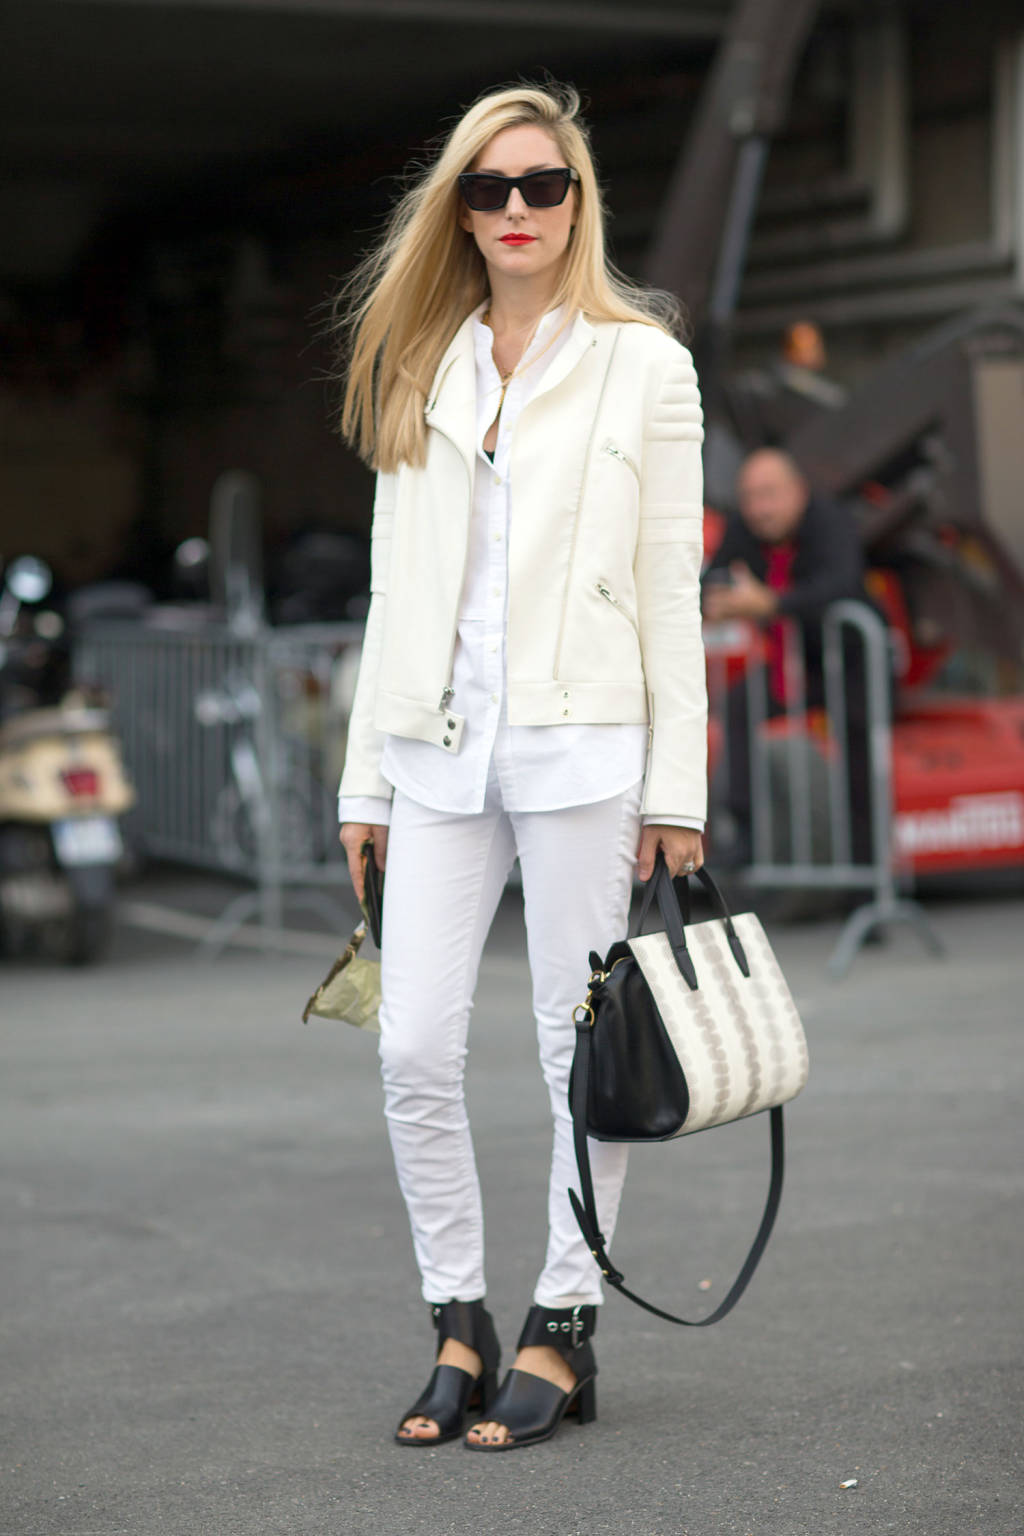 hbz-white-jeans-joanna-hilman-editor-summer-leather-moto-jacket